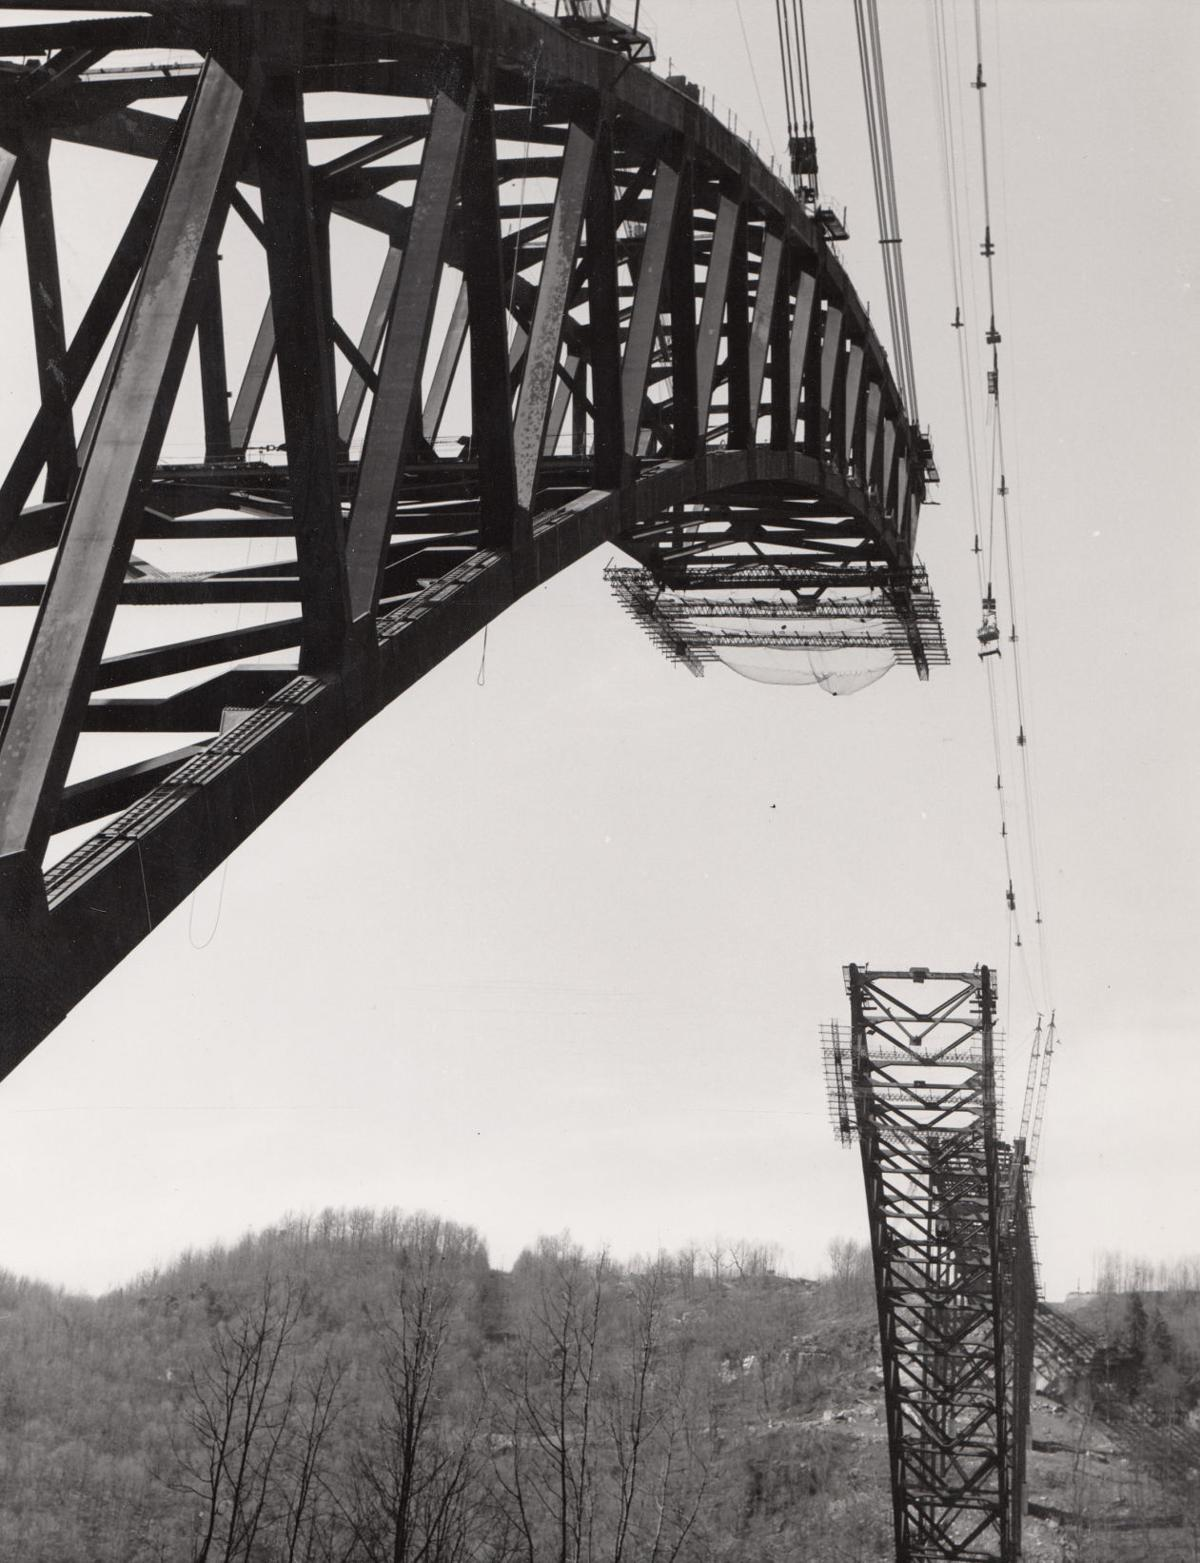 Vintage West Virginia: New River Gorge Bridge construction